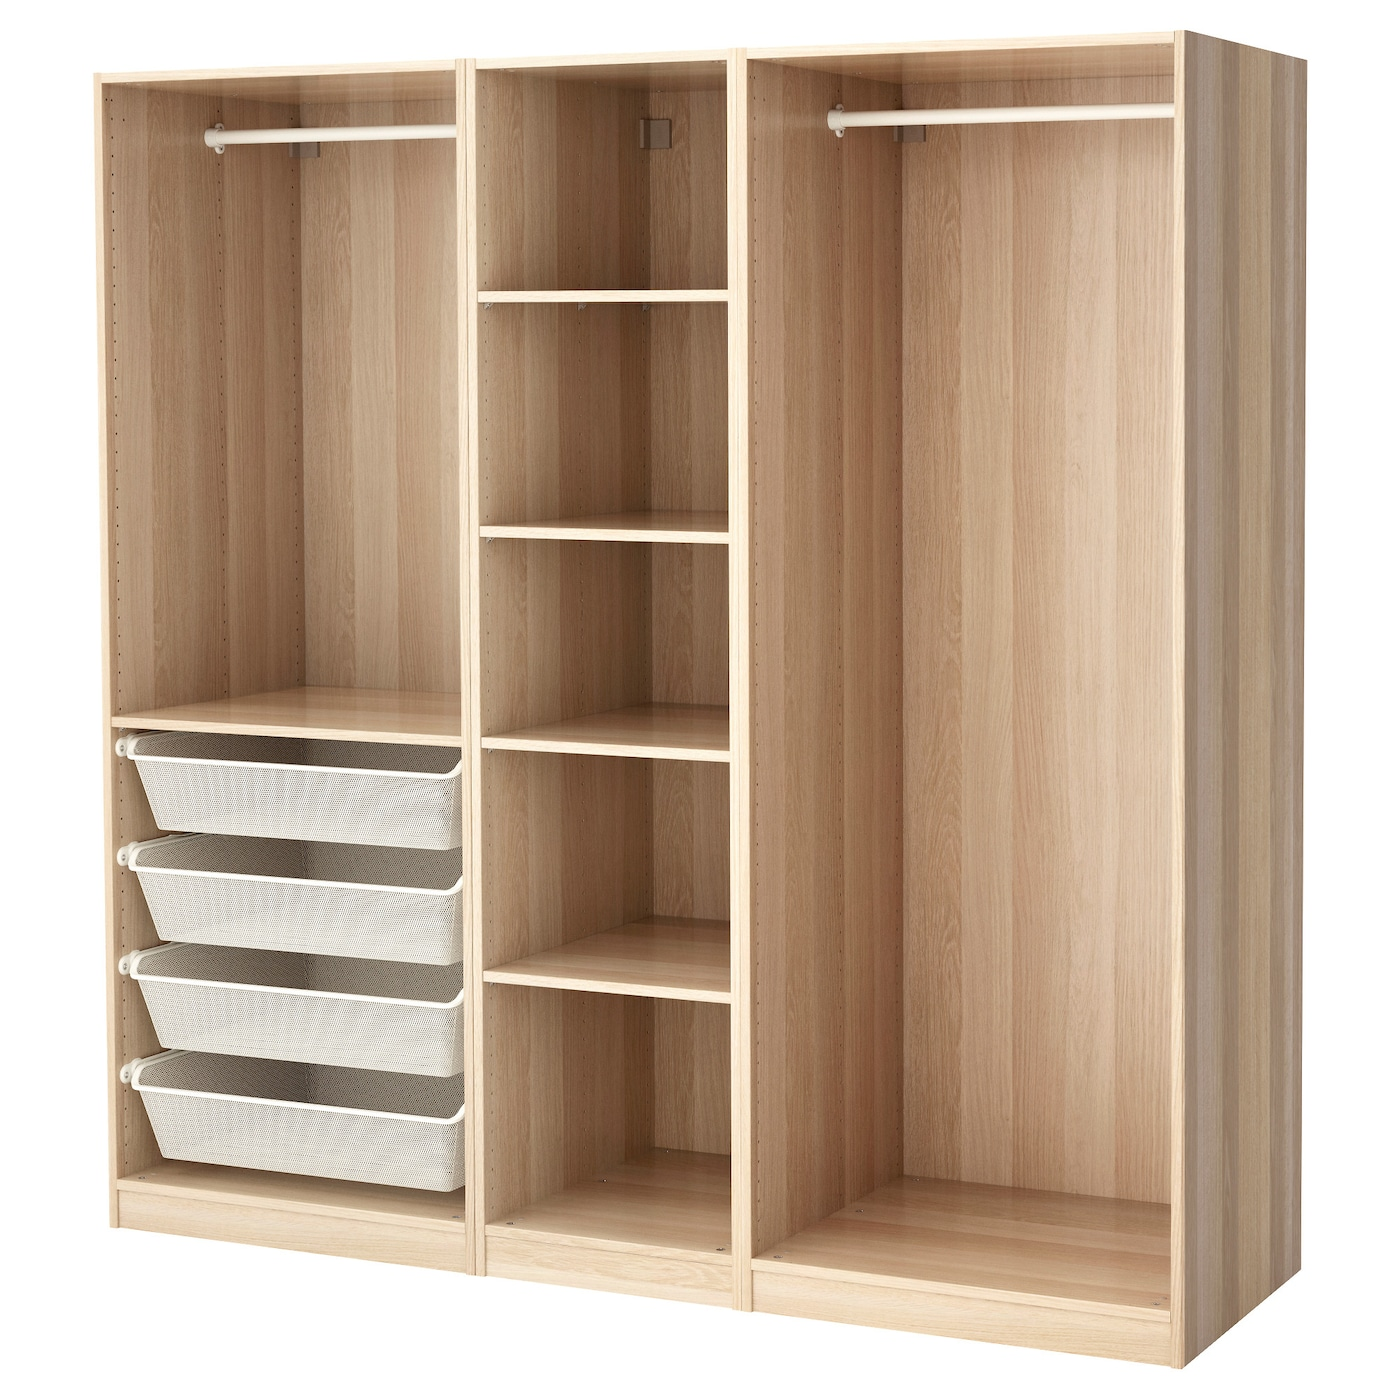 Pax wardrobe white stained oak effect 200 x 58 x 201 cm ikea for Creation armoire ikea